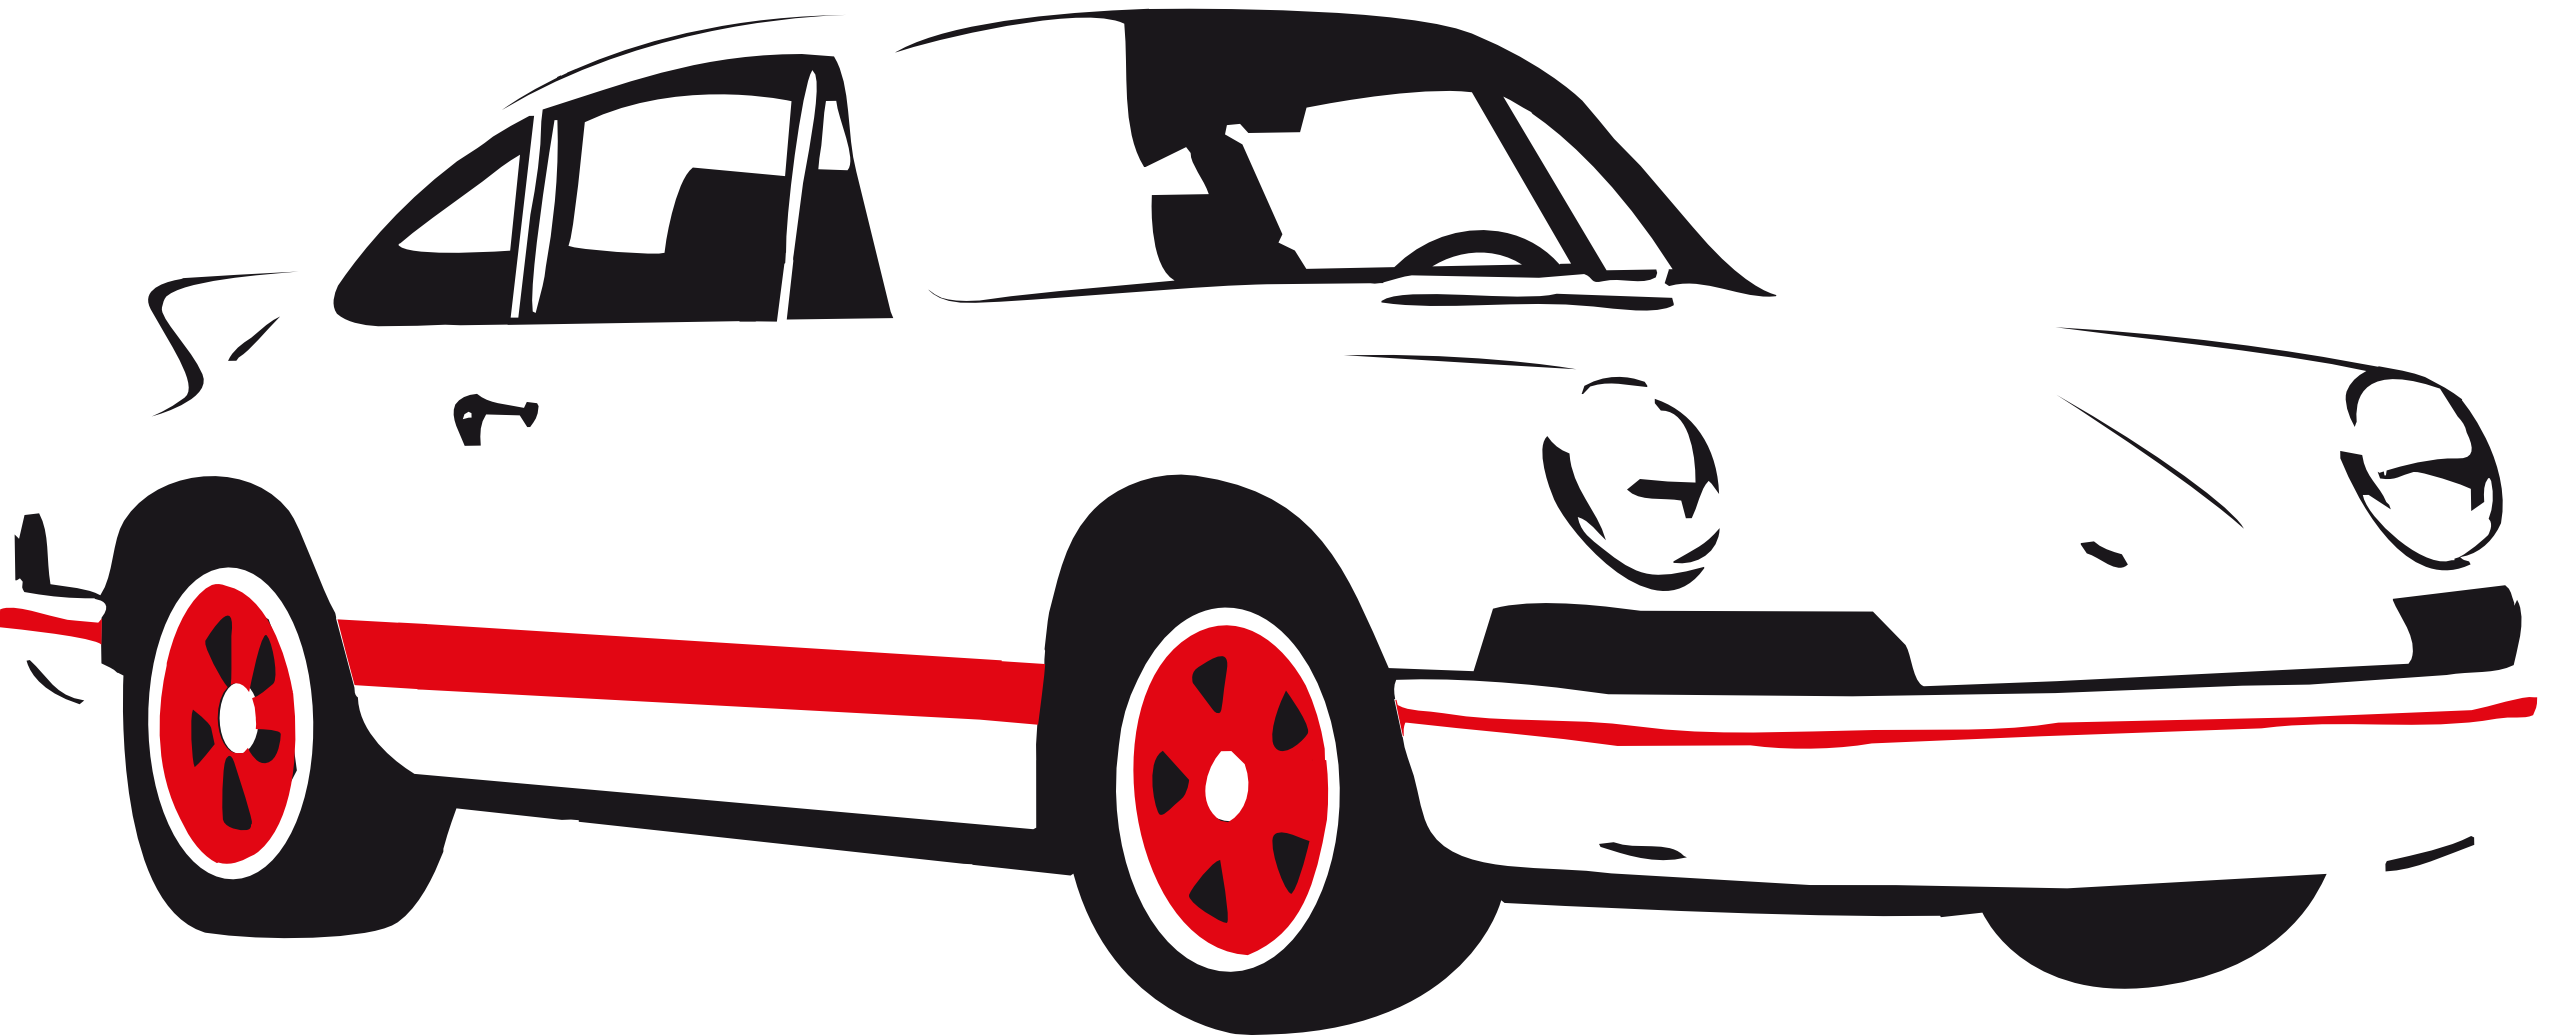 Free animated car clipart graphic free stock Car Front Silhouette at GetDrawings.com | Free for personal use Car ... graphic free stock